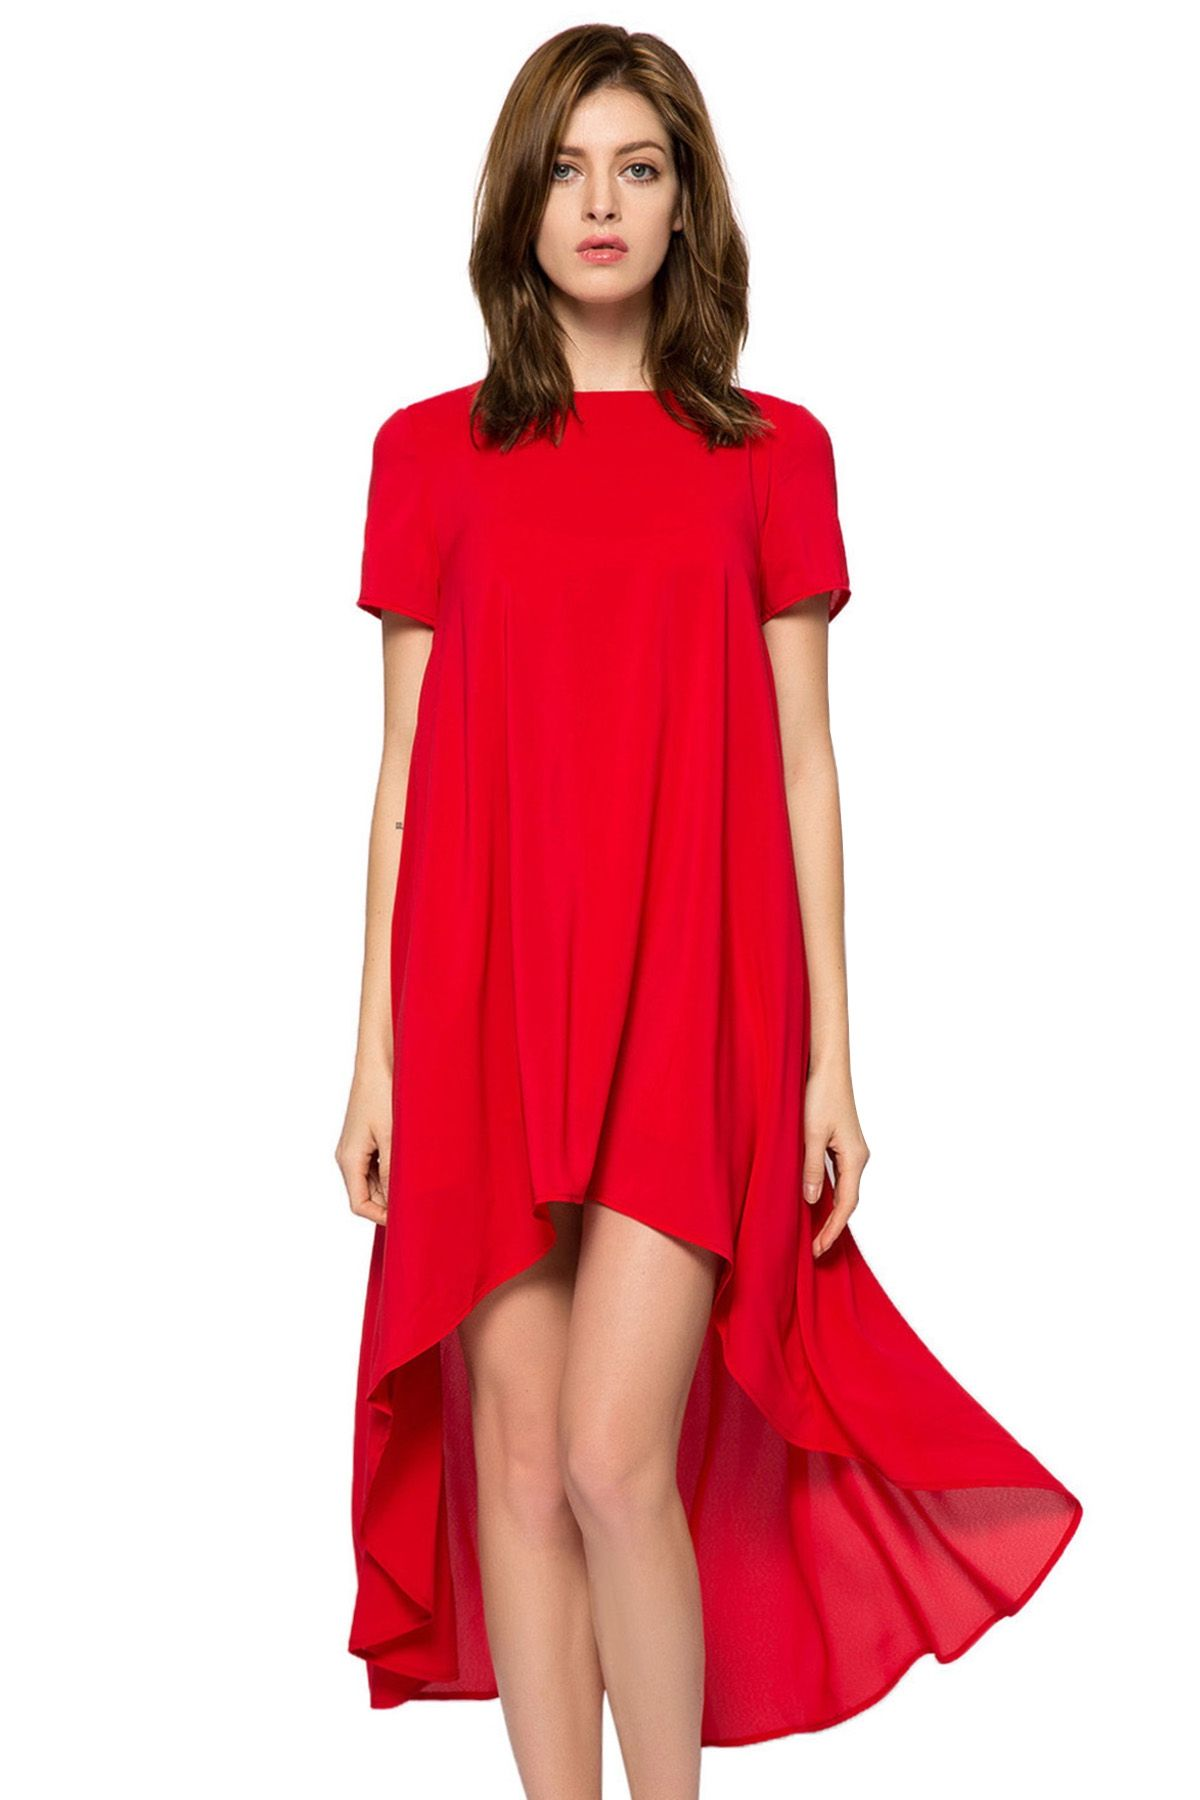 Solid Color Short Sleeve High Low Dress High Low Dress Fashion Wear Fashion Dresses [ 1800 x 1200 Pixel ]